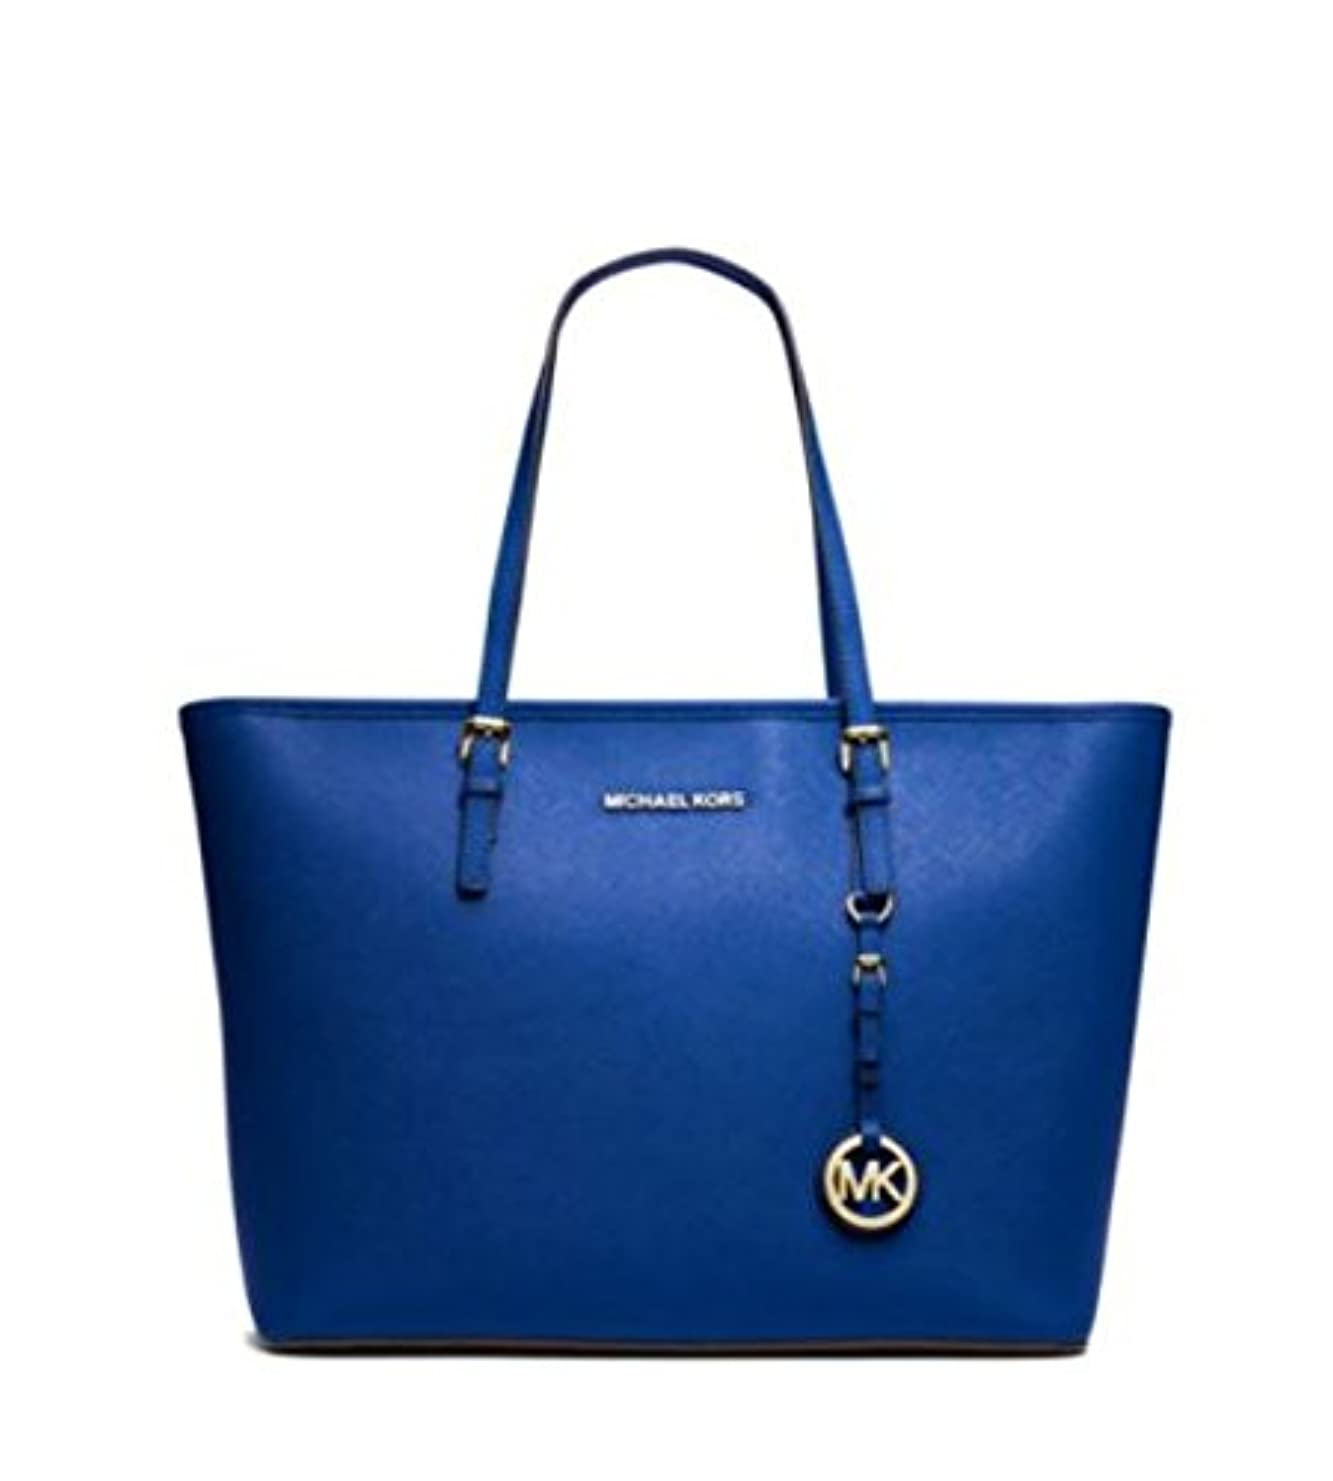 血統椅子くるくるMICHAEL KORS JET SET MEDIUM TRAVEL TOP ZIP TOTE ELECTRIC BLUE [並行輸入品]